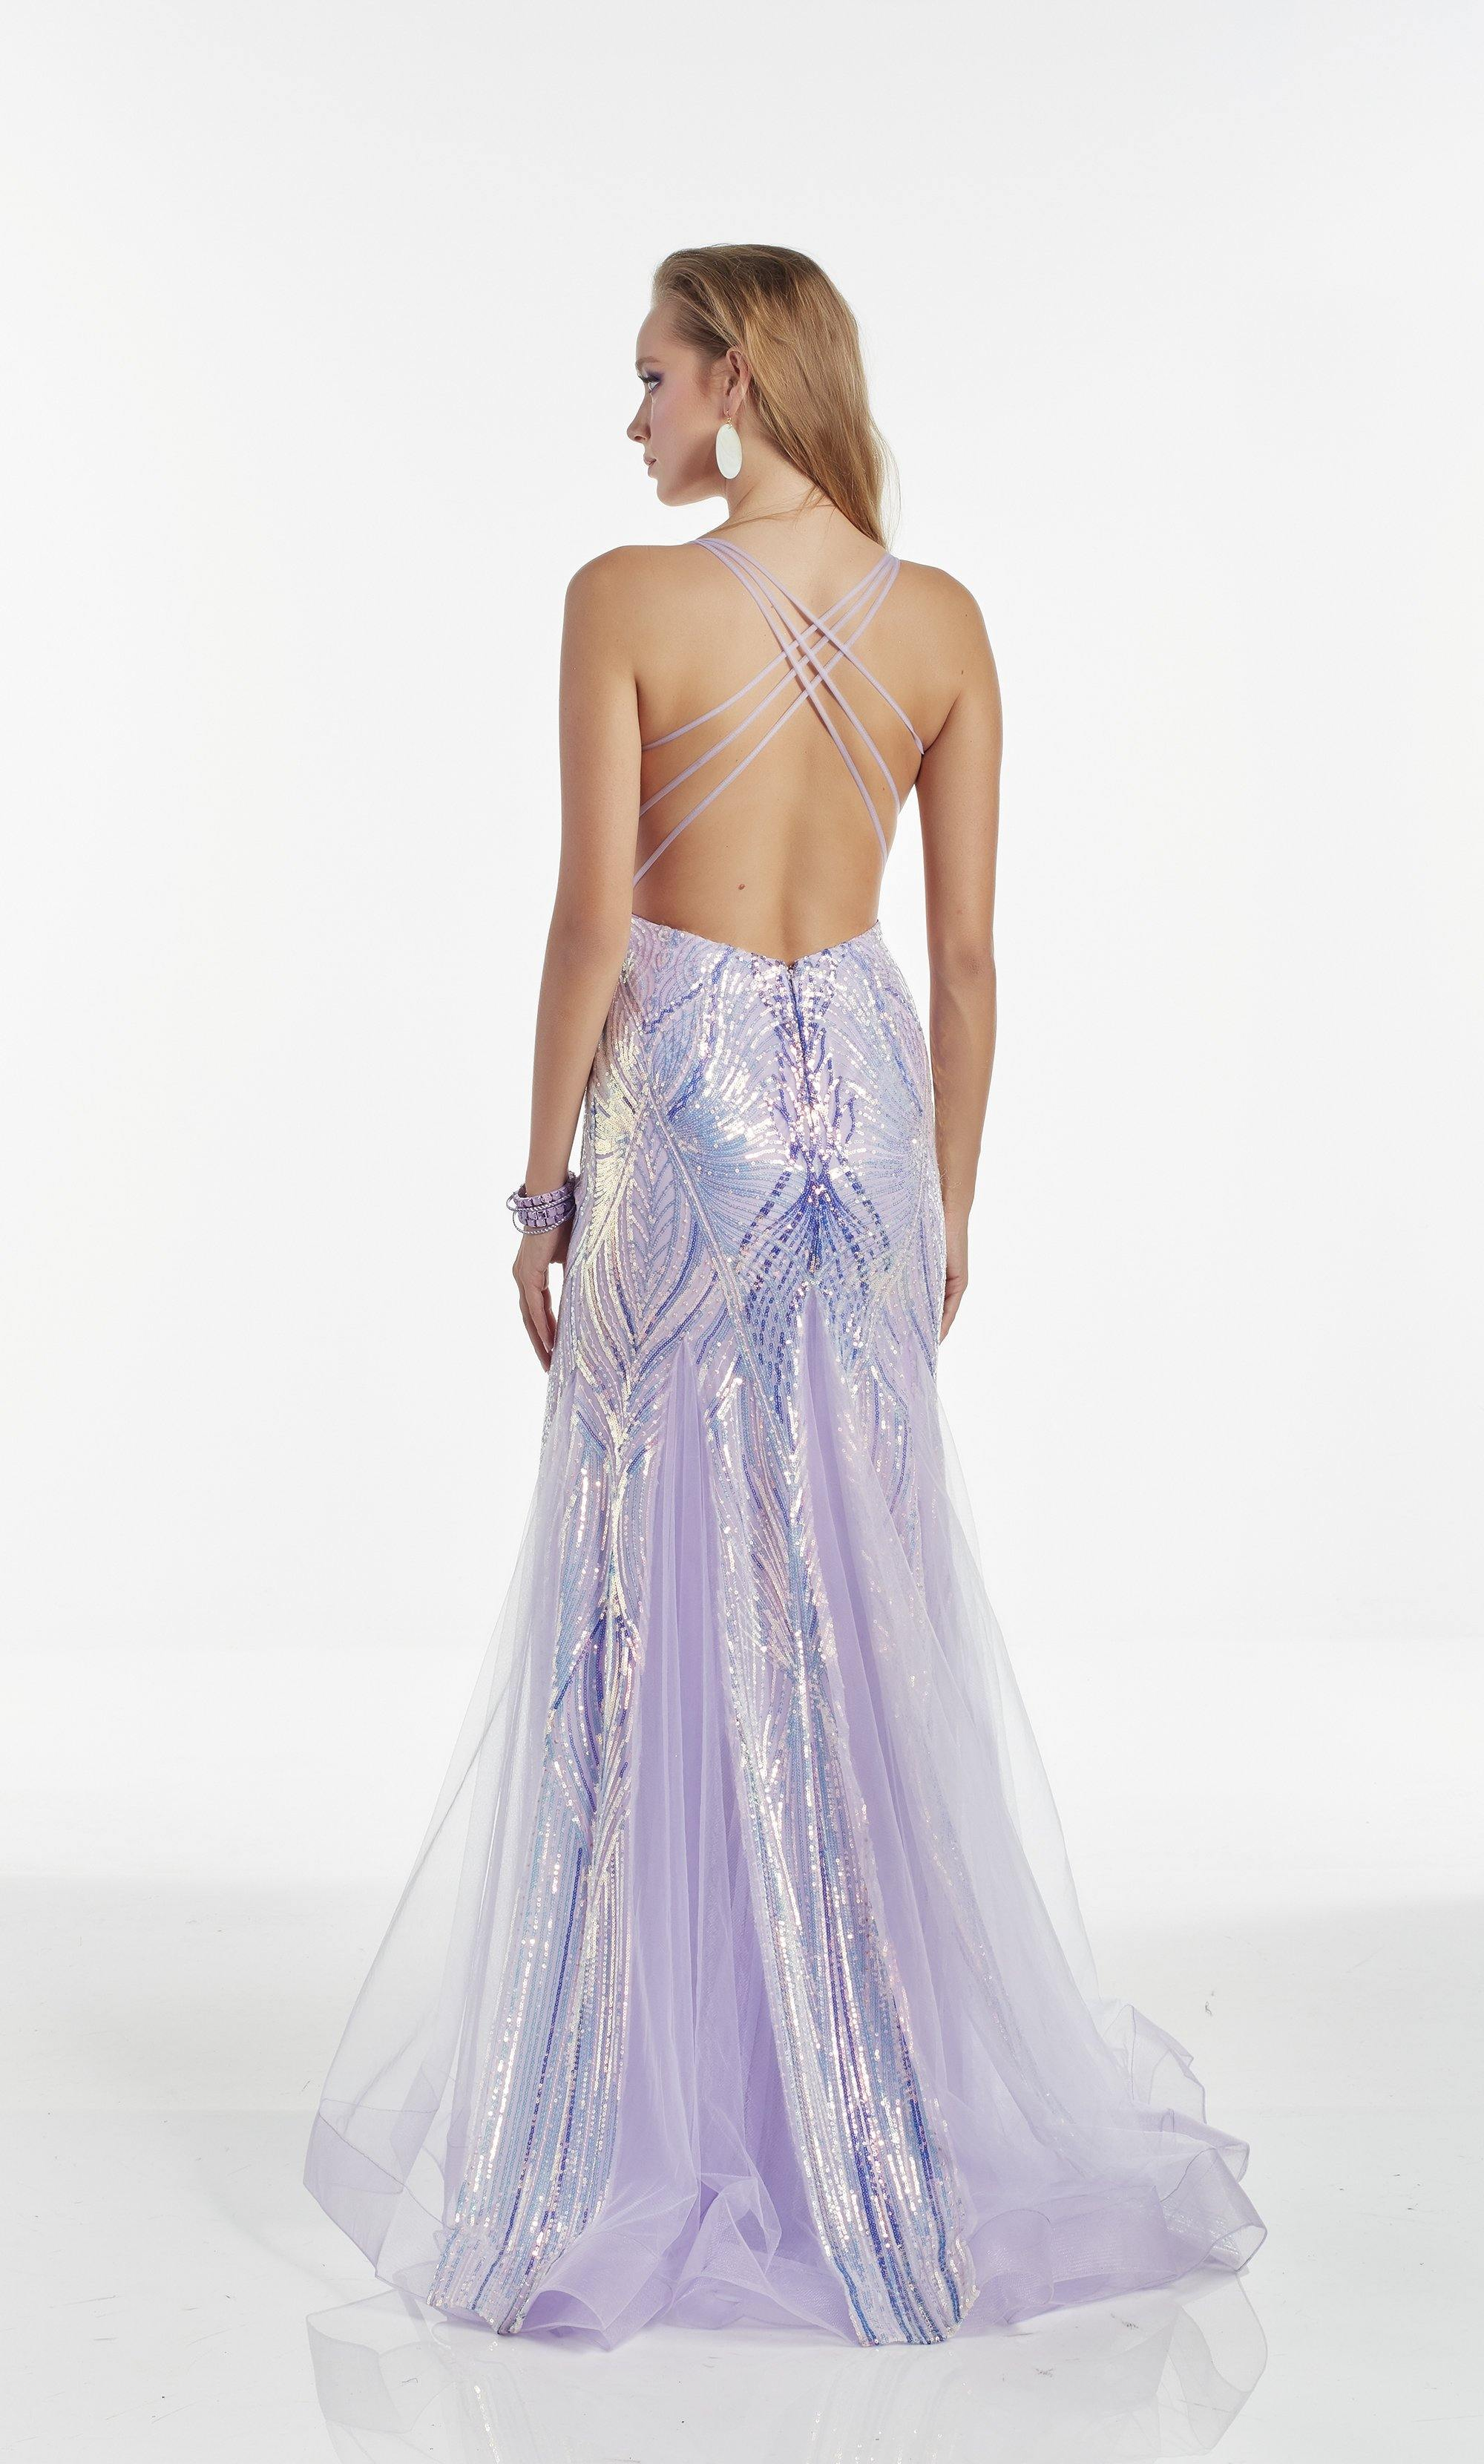 Iridescent Purple Opal sequin mermaid evening dress with a sweetheart neckline